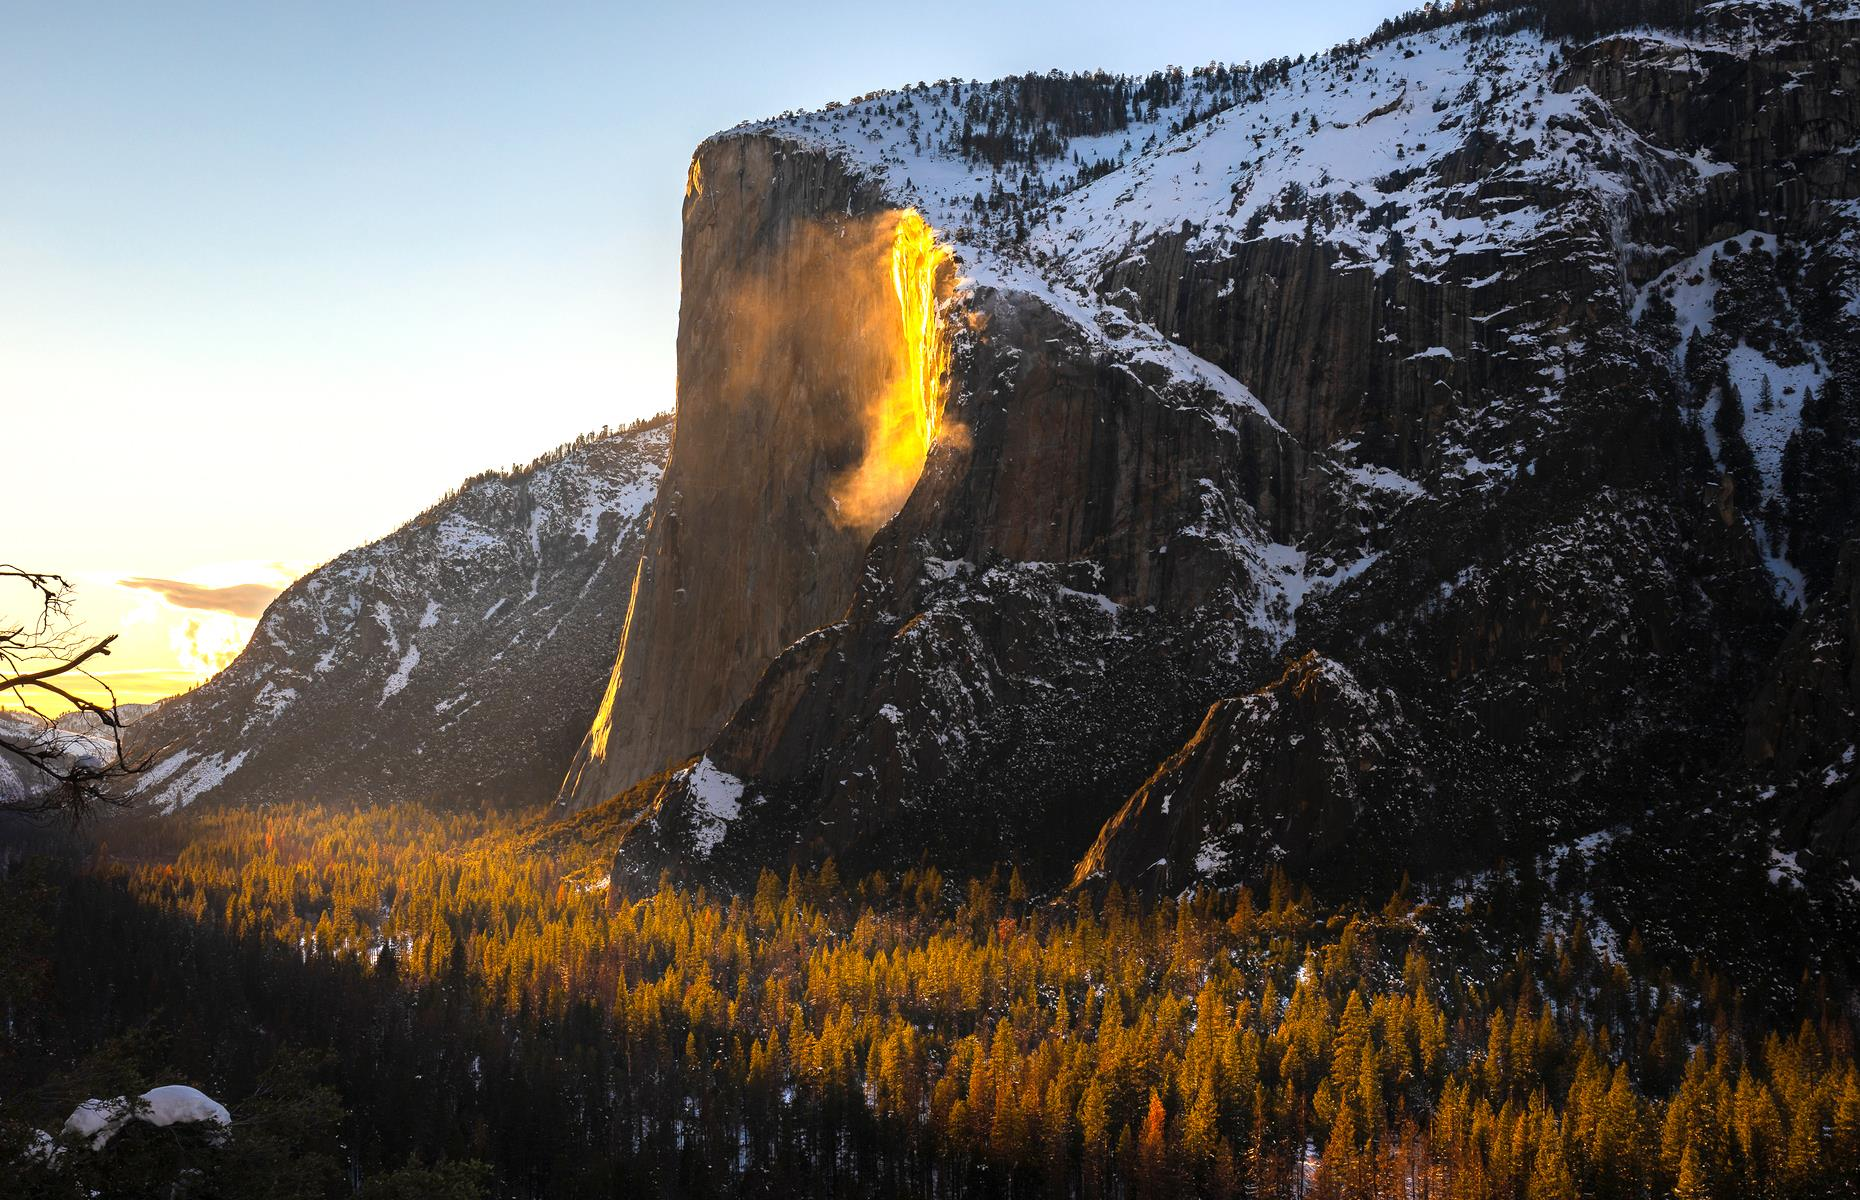 Slide 17 of 41: Horsetail Fall– a seasonal cascade rushing over the eastern side of El Capitan – is beautiful whenever it makes an appearance. But, come late February, it's extra special. When the conditions are just so and the falls are backlit by the setting sun, it appears as though a thick stream of lava is spilling over the side of the mountain. Unsurprisingly, the ethereal spectacle usually draws in the crowds.